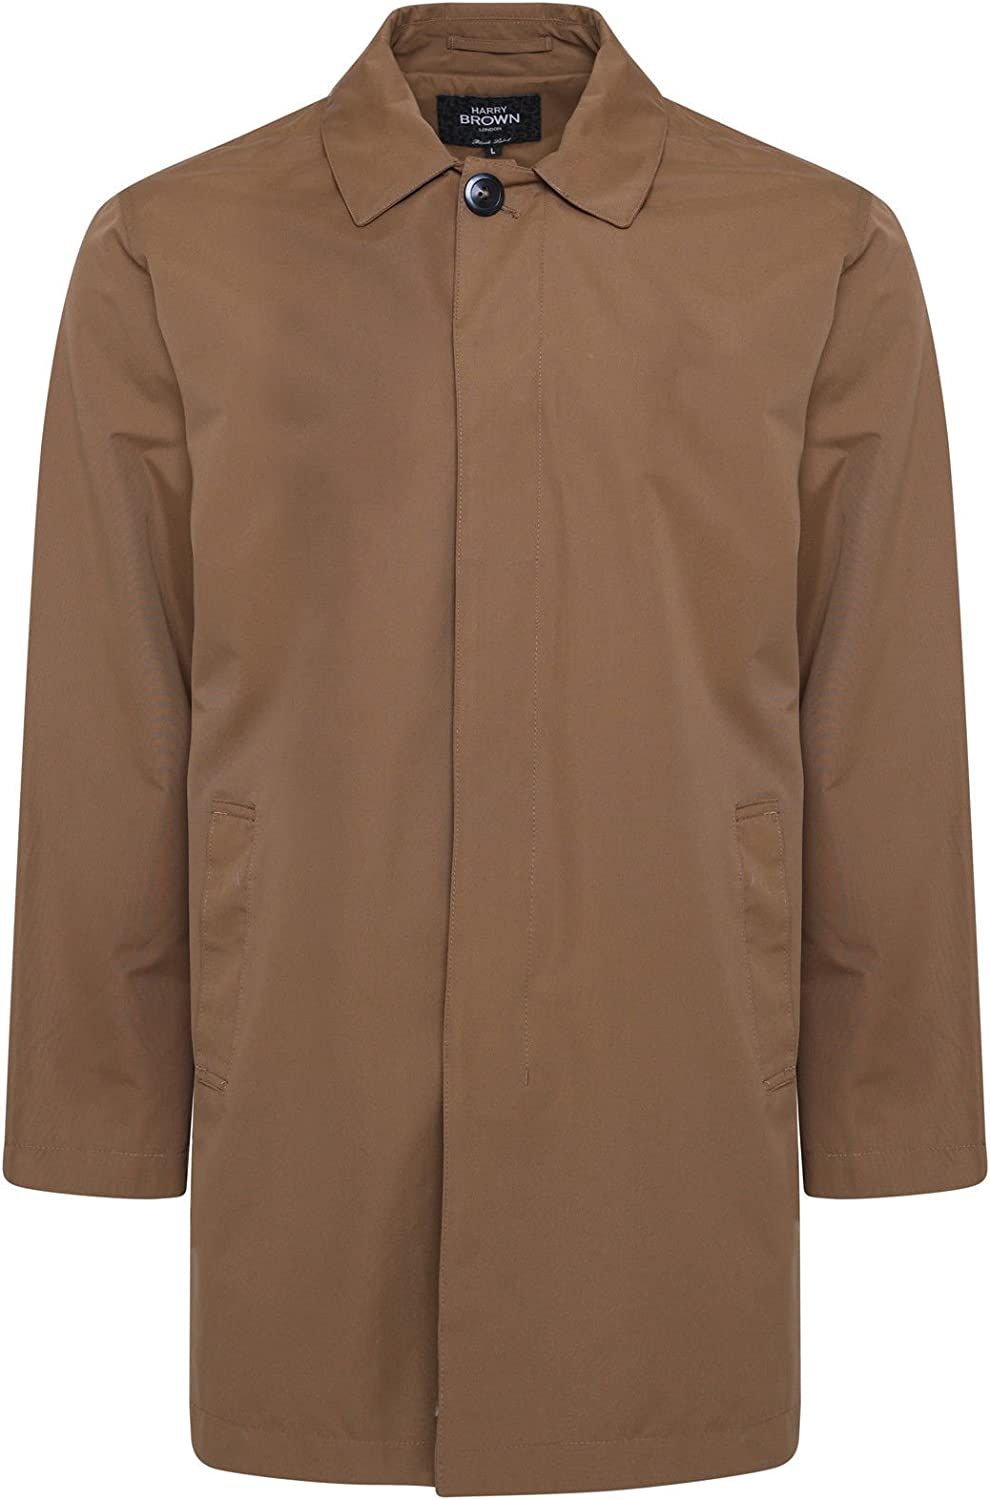 HARRY BROWN Trench Breasted Challenge the lowest price of Japan ☆ Single Free Shipping New Coat